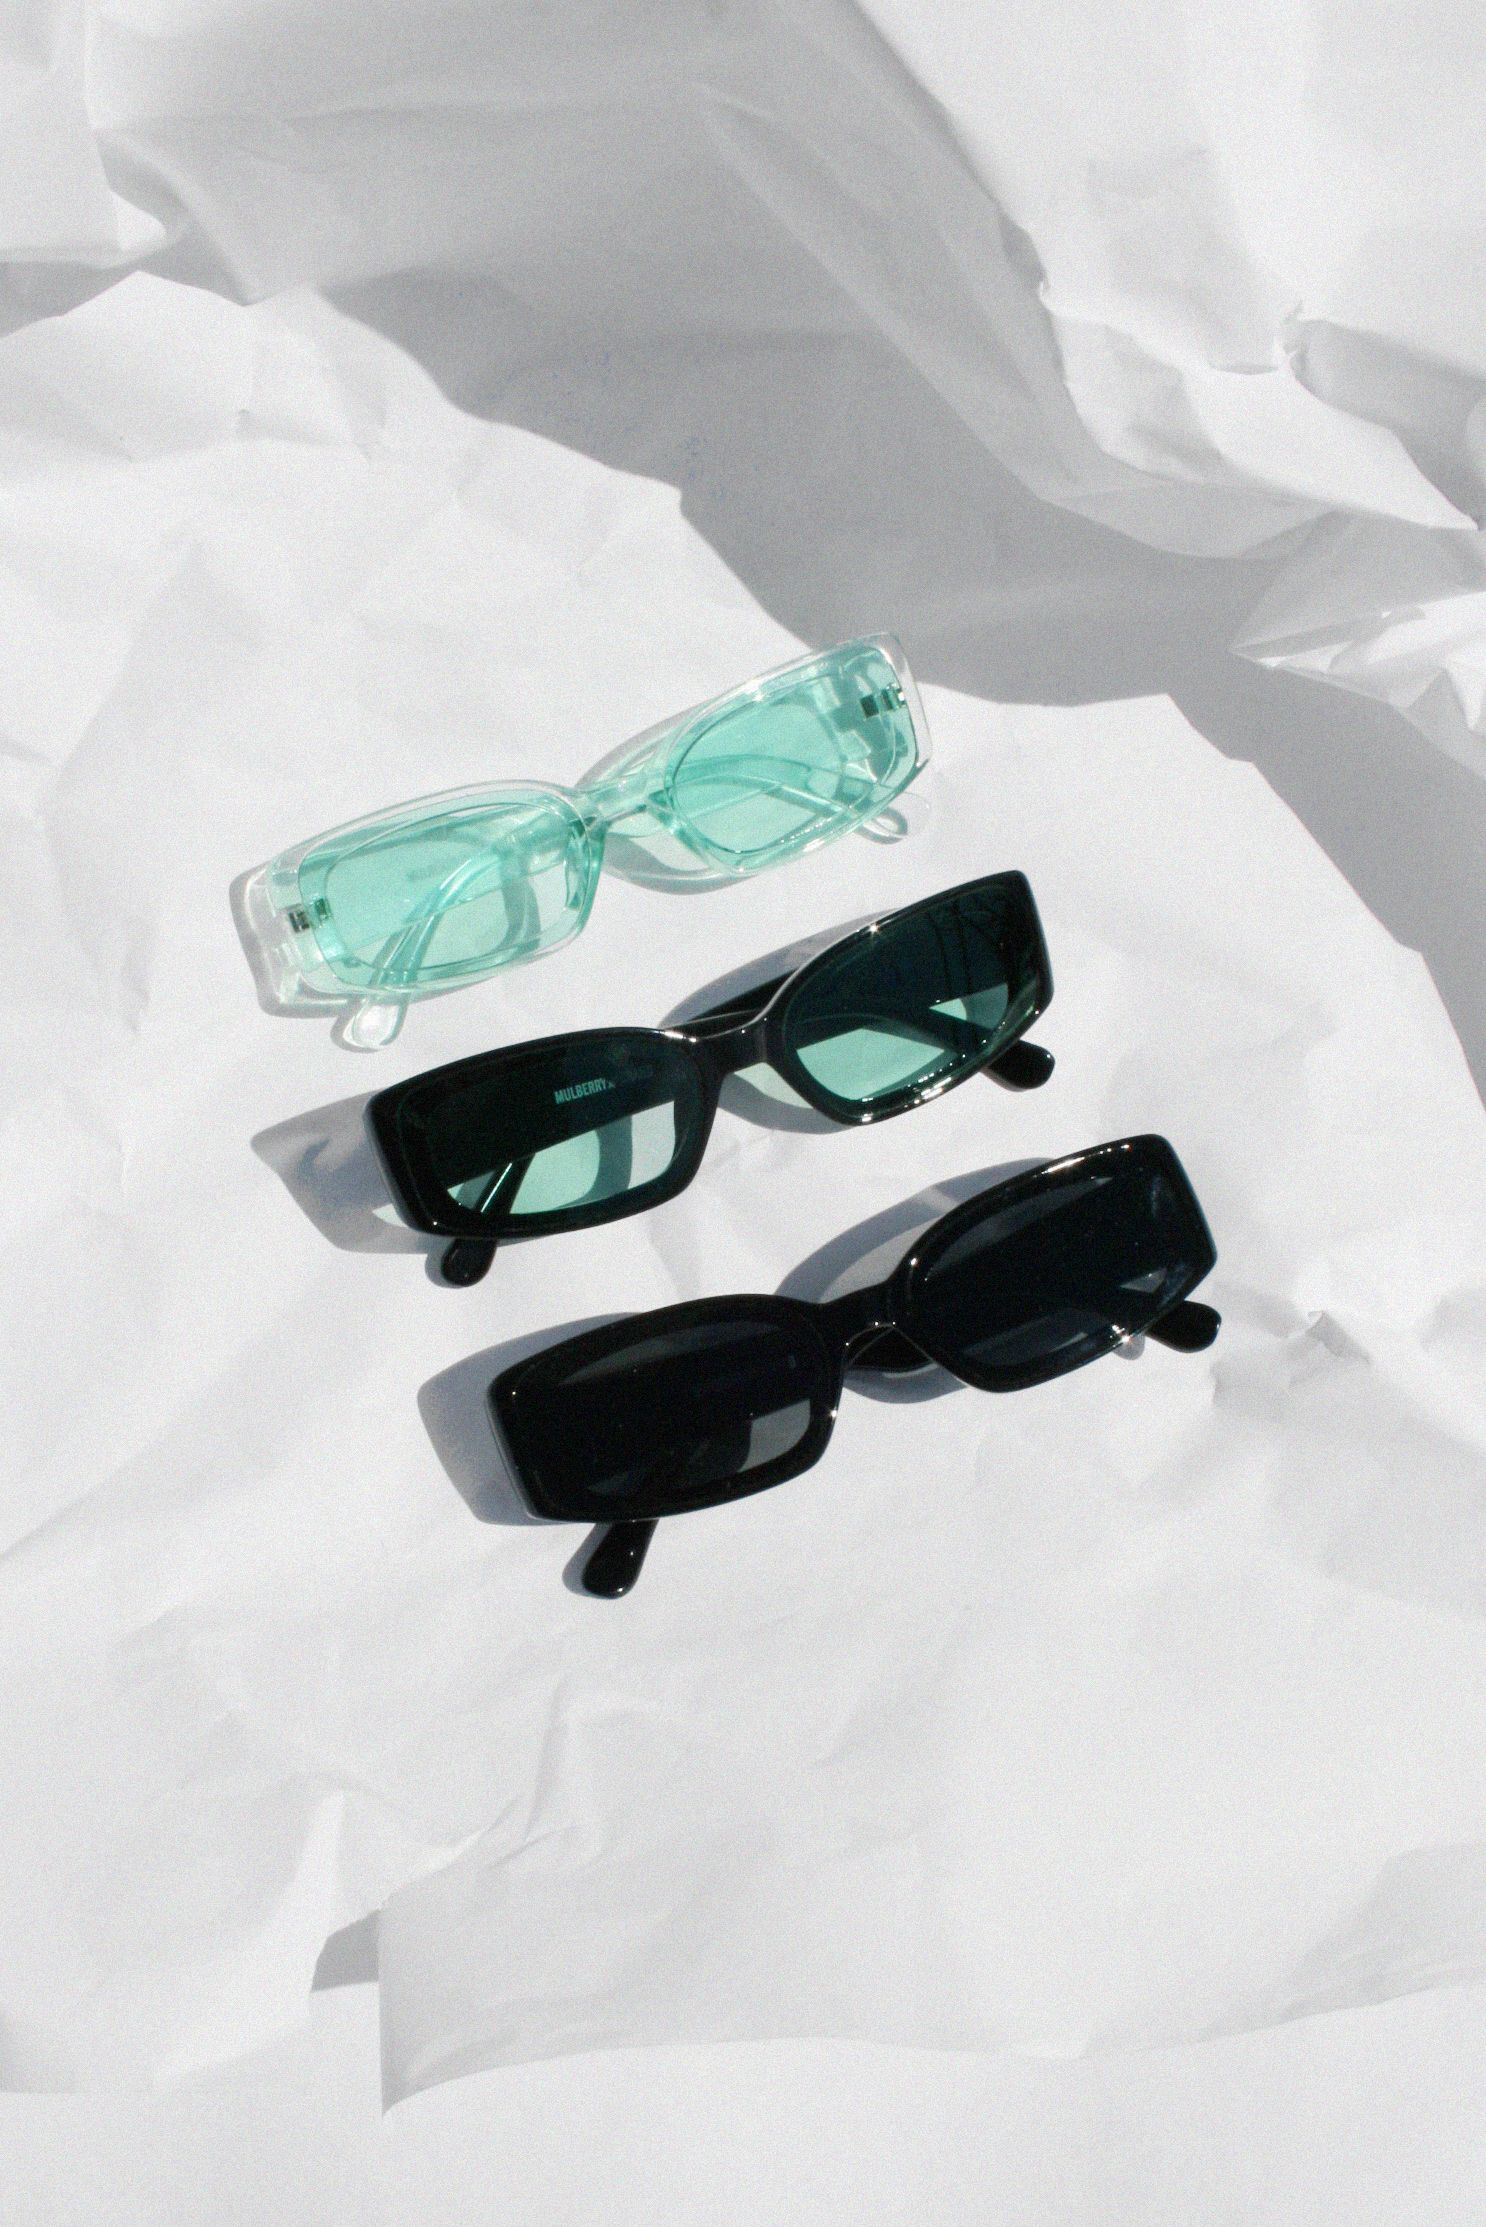 Mulberry and Grand Retro Poolside Sunglasses in Mint & Black